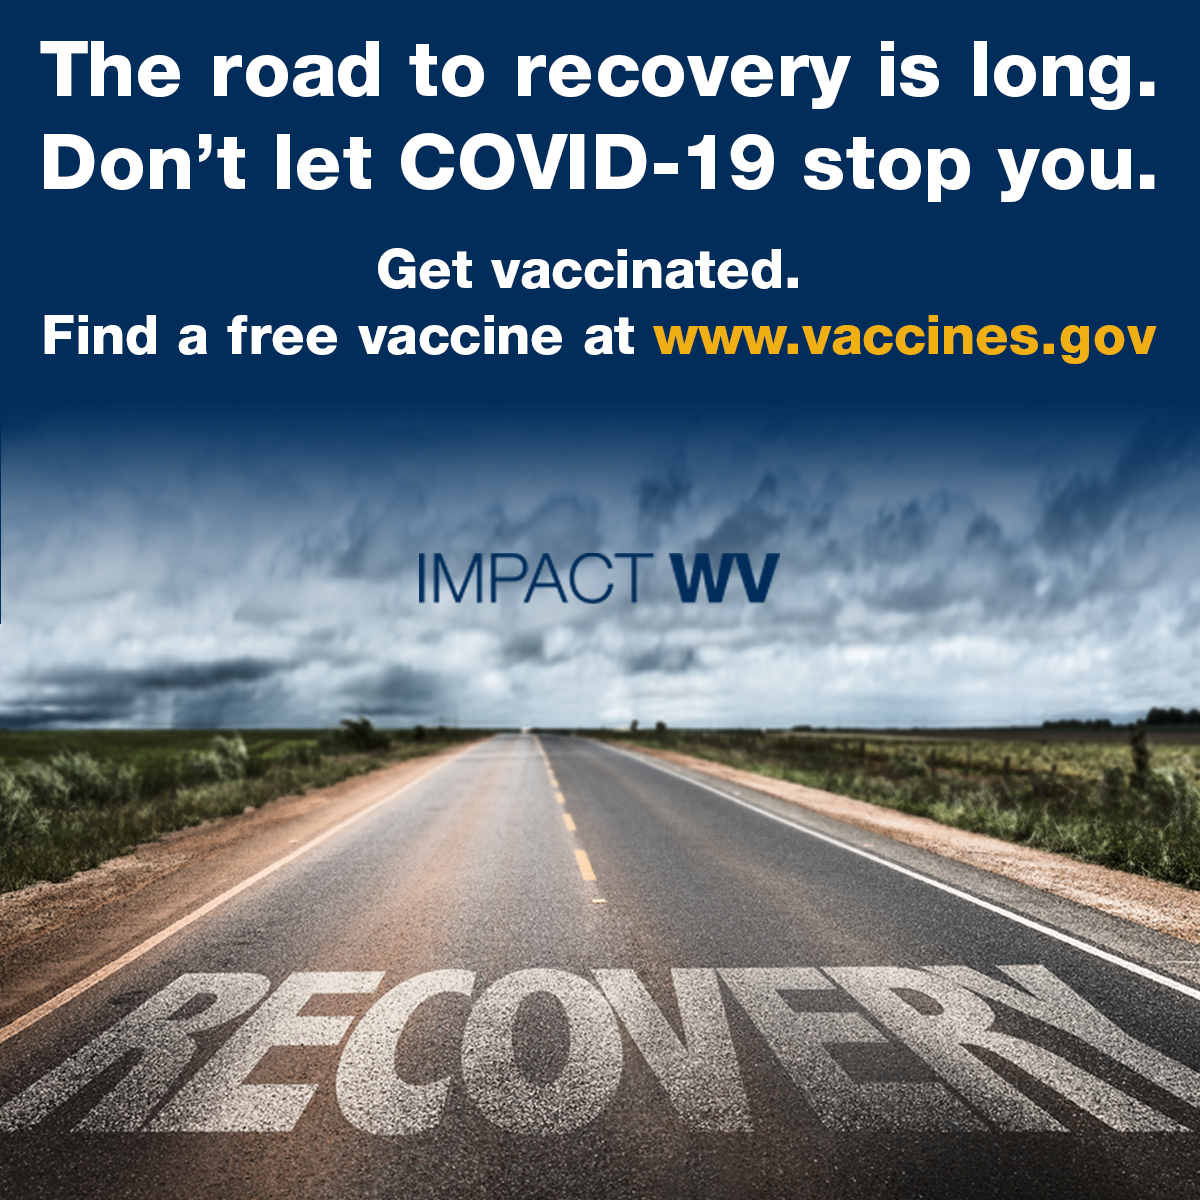 an image with the road to recovery is long text featuring a desert road